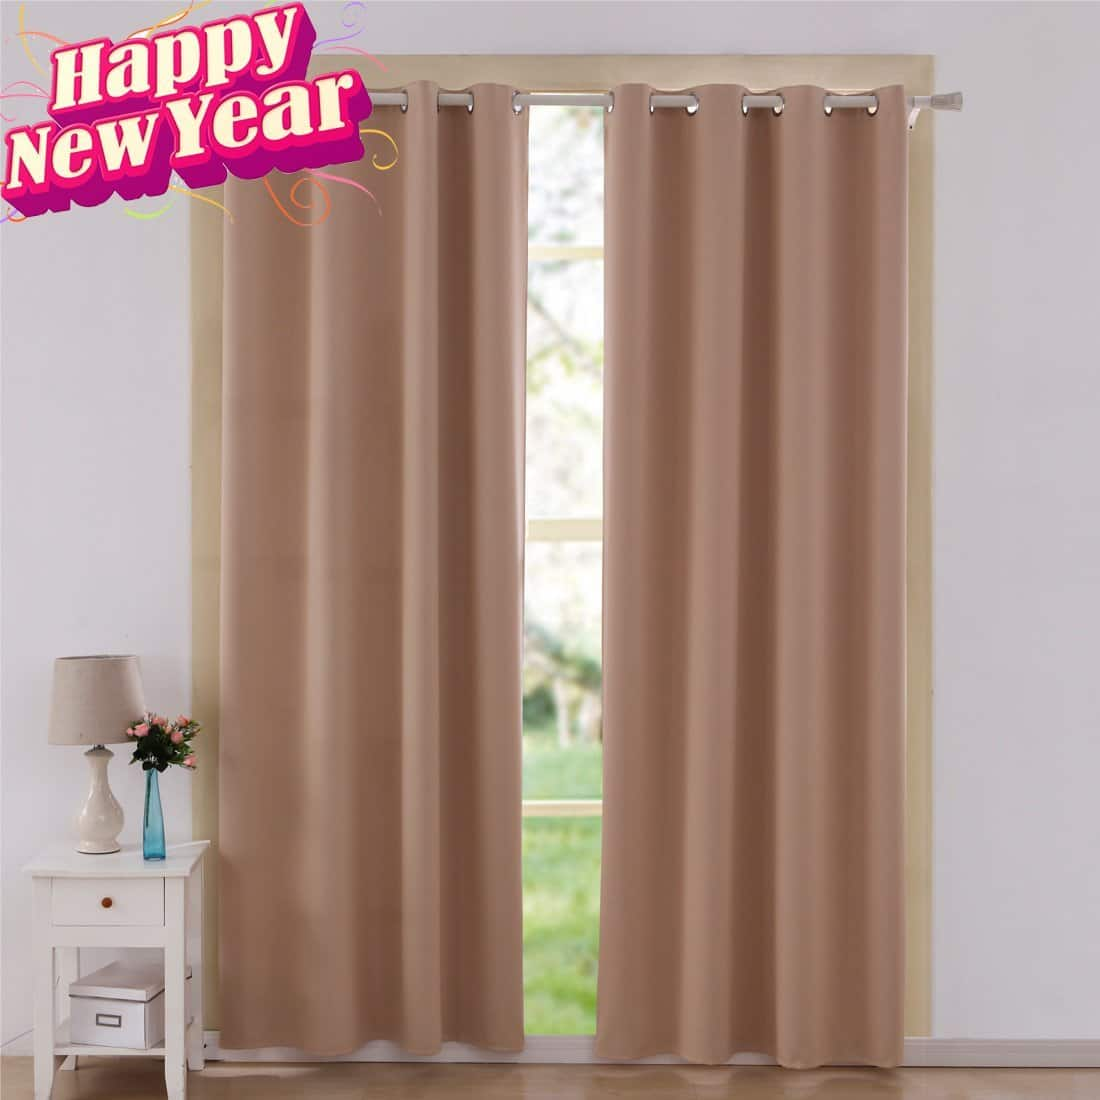 Shilucheng Thermal Insulated Blackout Curtains/Drapes 52 x 63-Inch  Beige 2 Panels $12.80 AC @Amazon